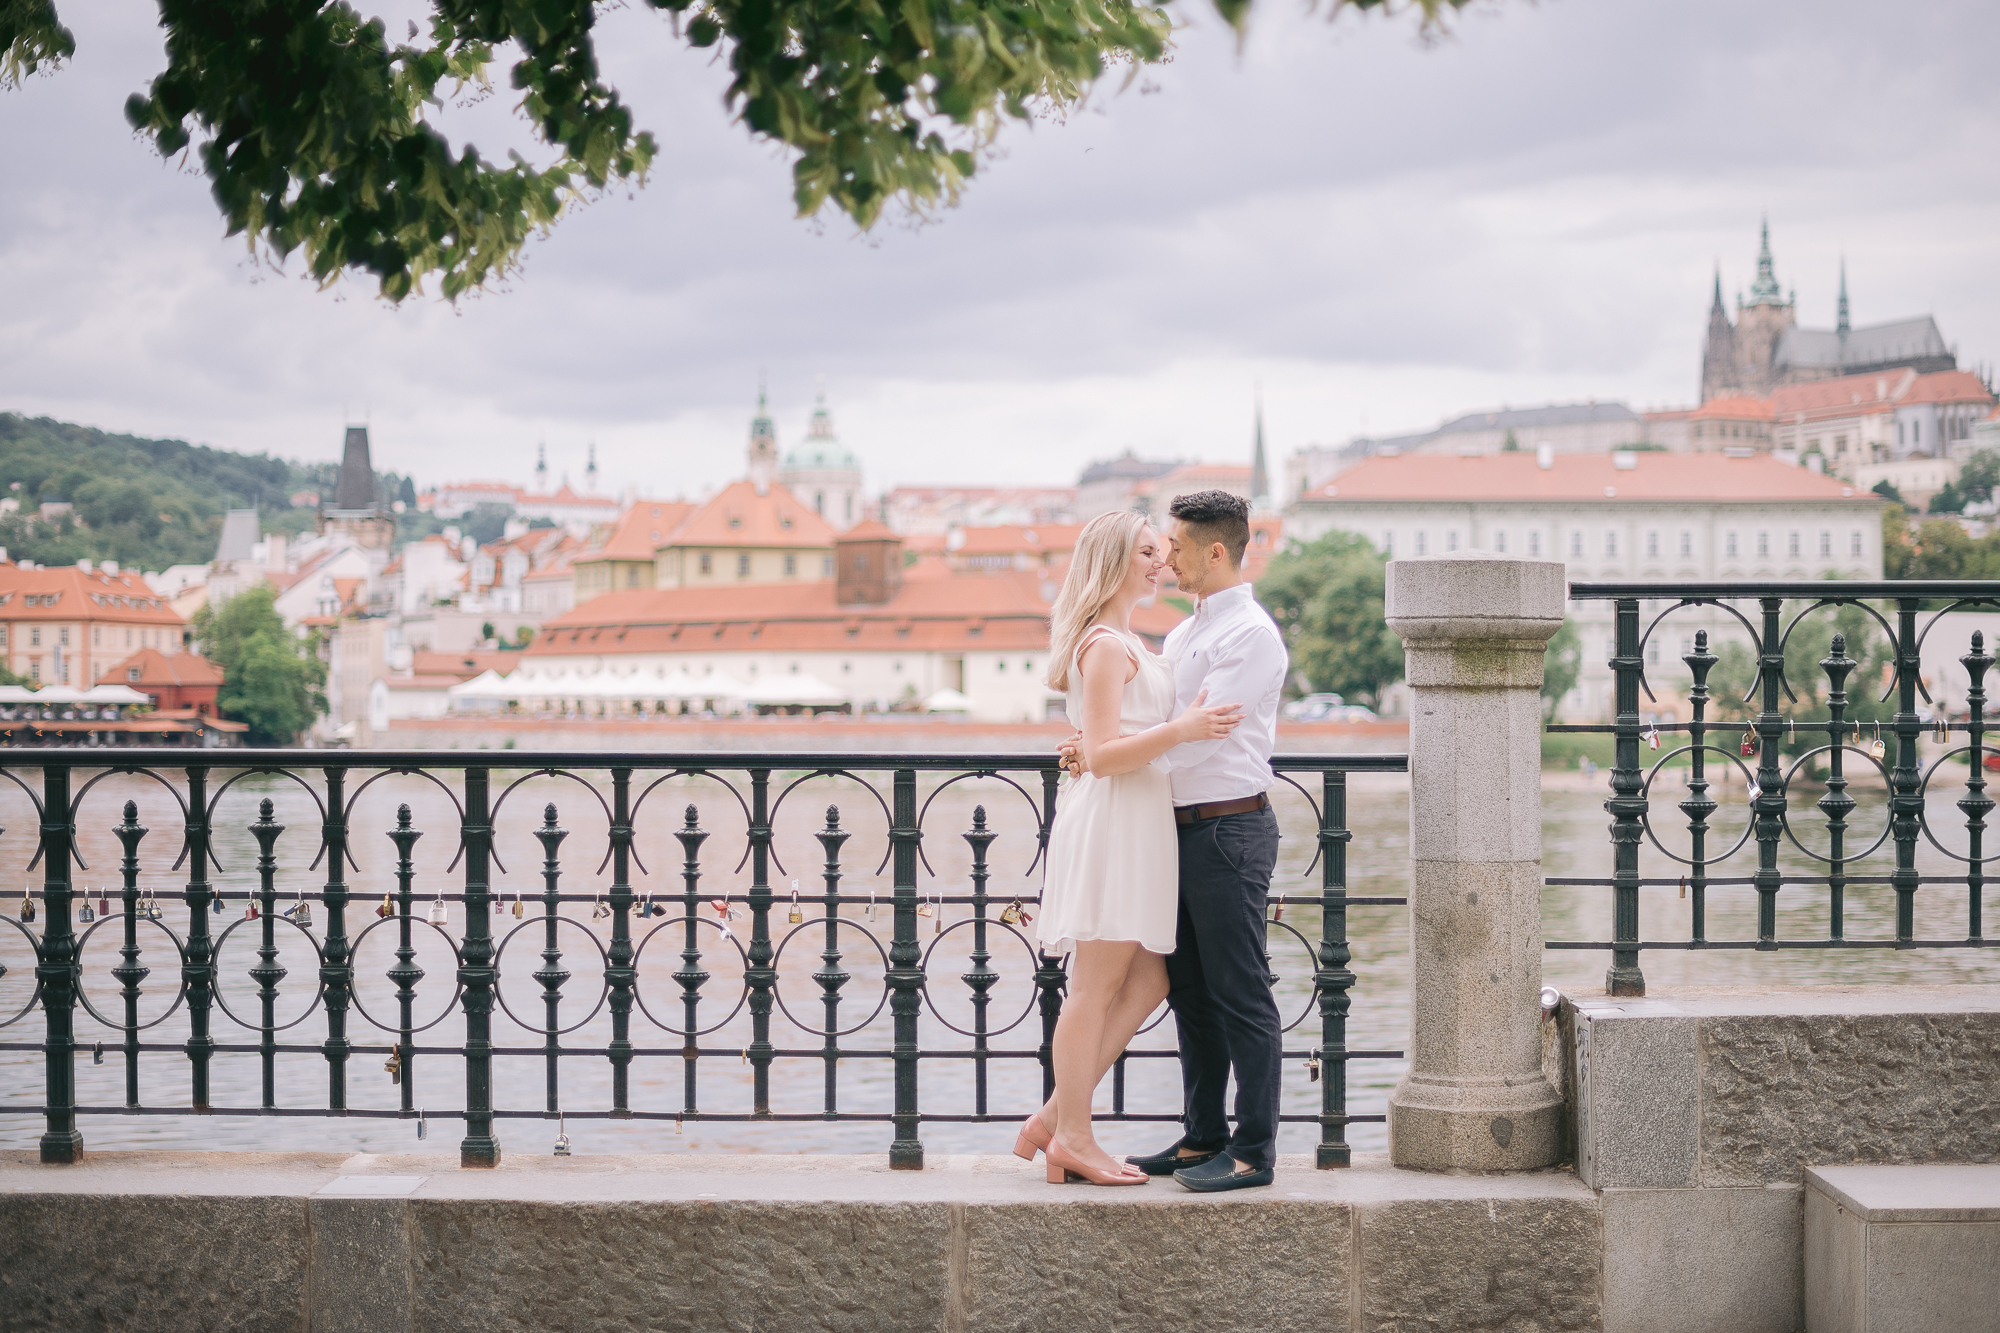 Prague-Wedding-Photography-Matej-Trasak-Engagement-AJ-126.jpg